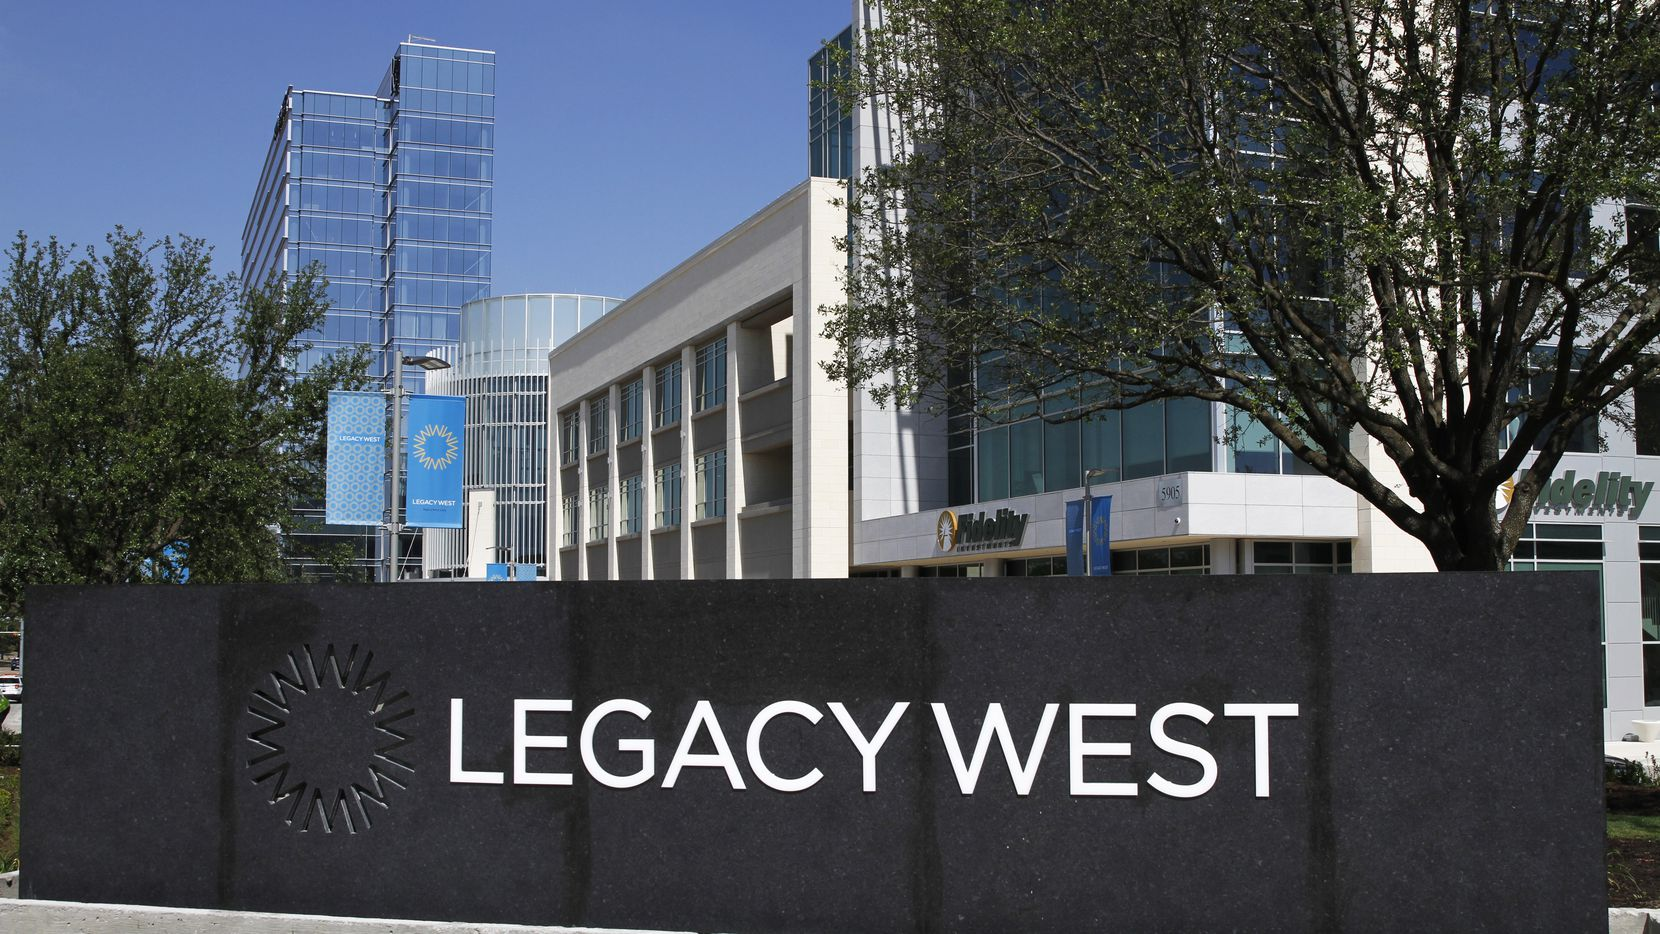 The City of Plano has purchased more than 7 acres of Legacy West for a park.